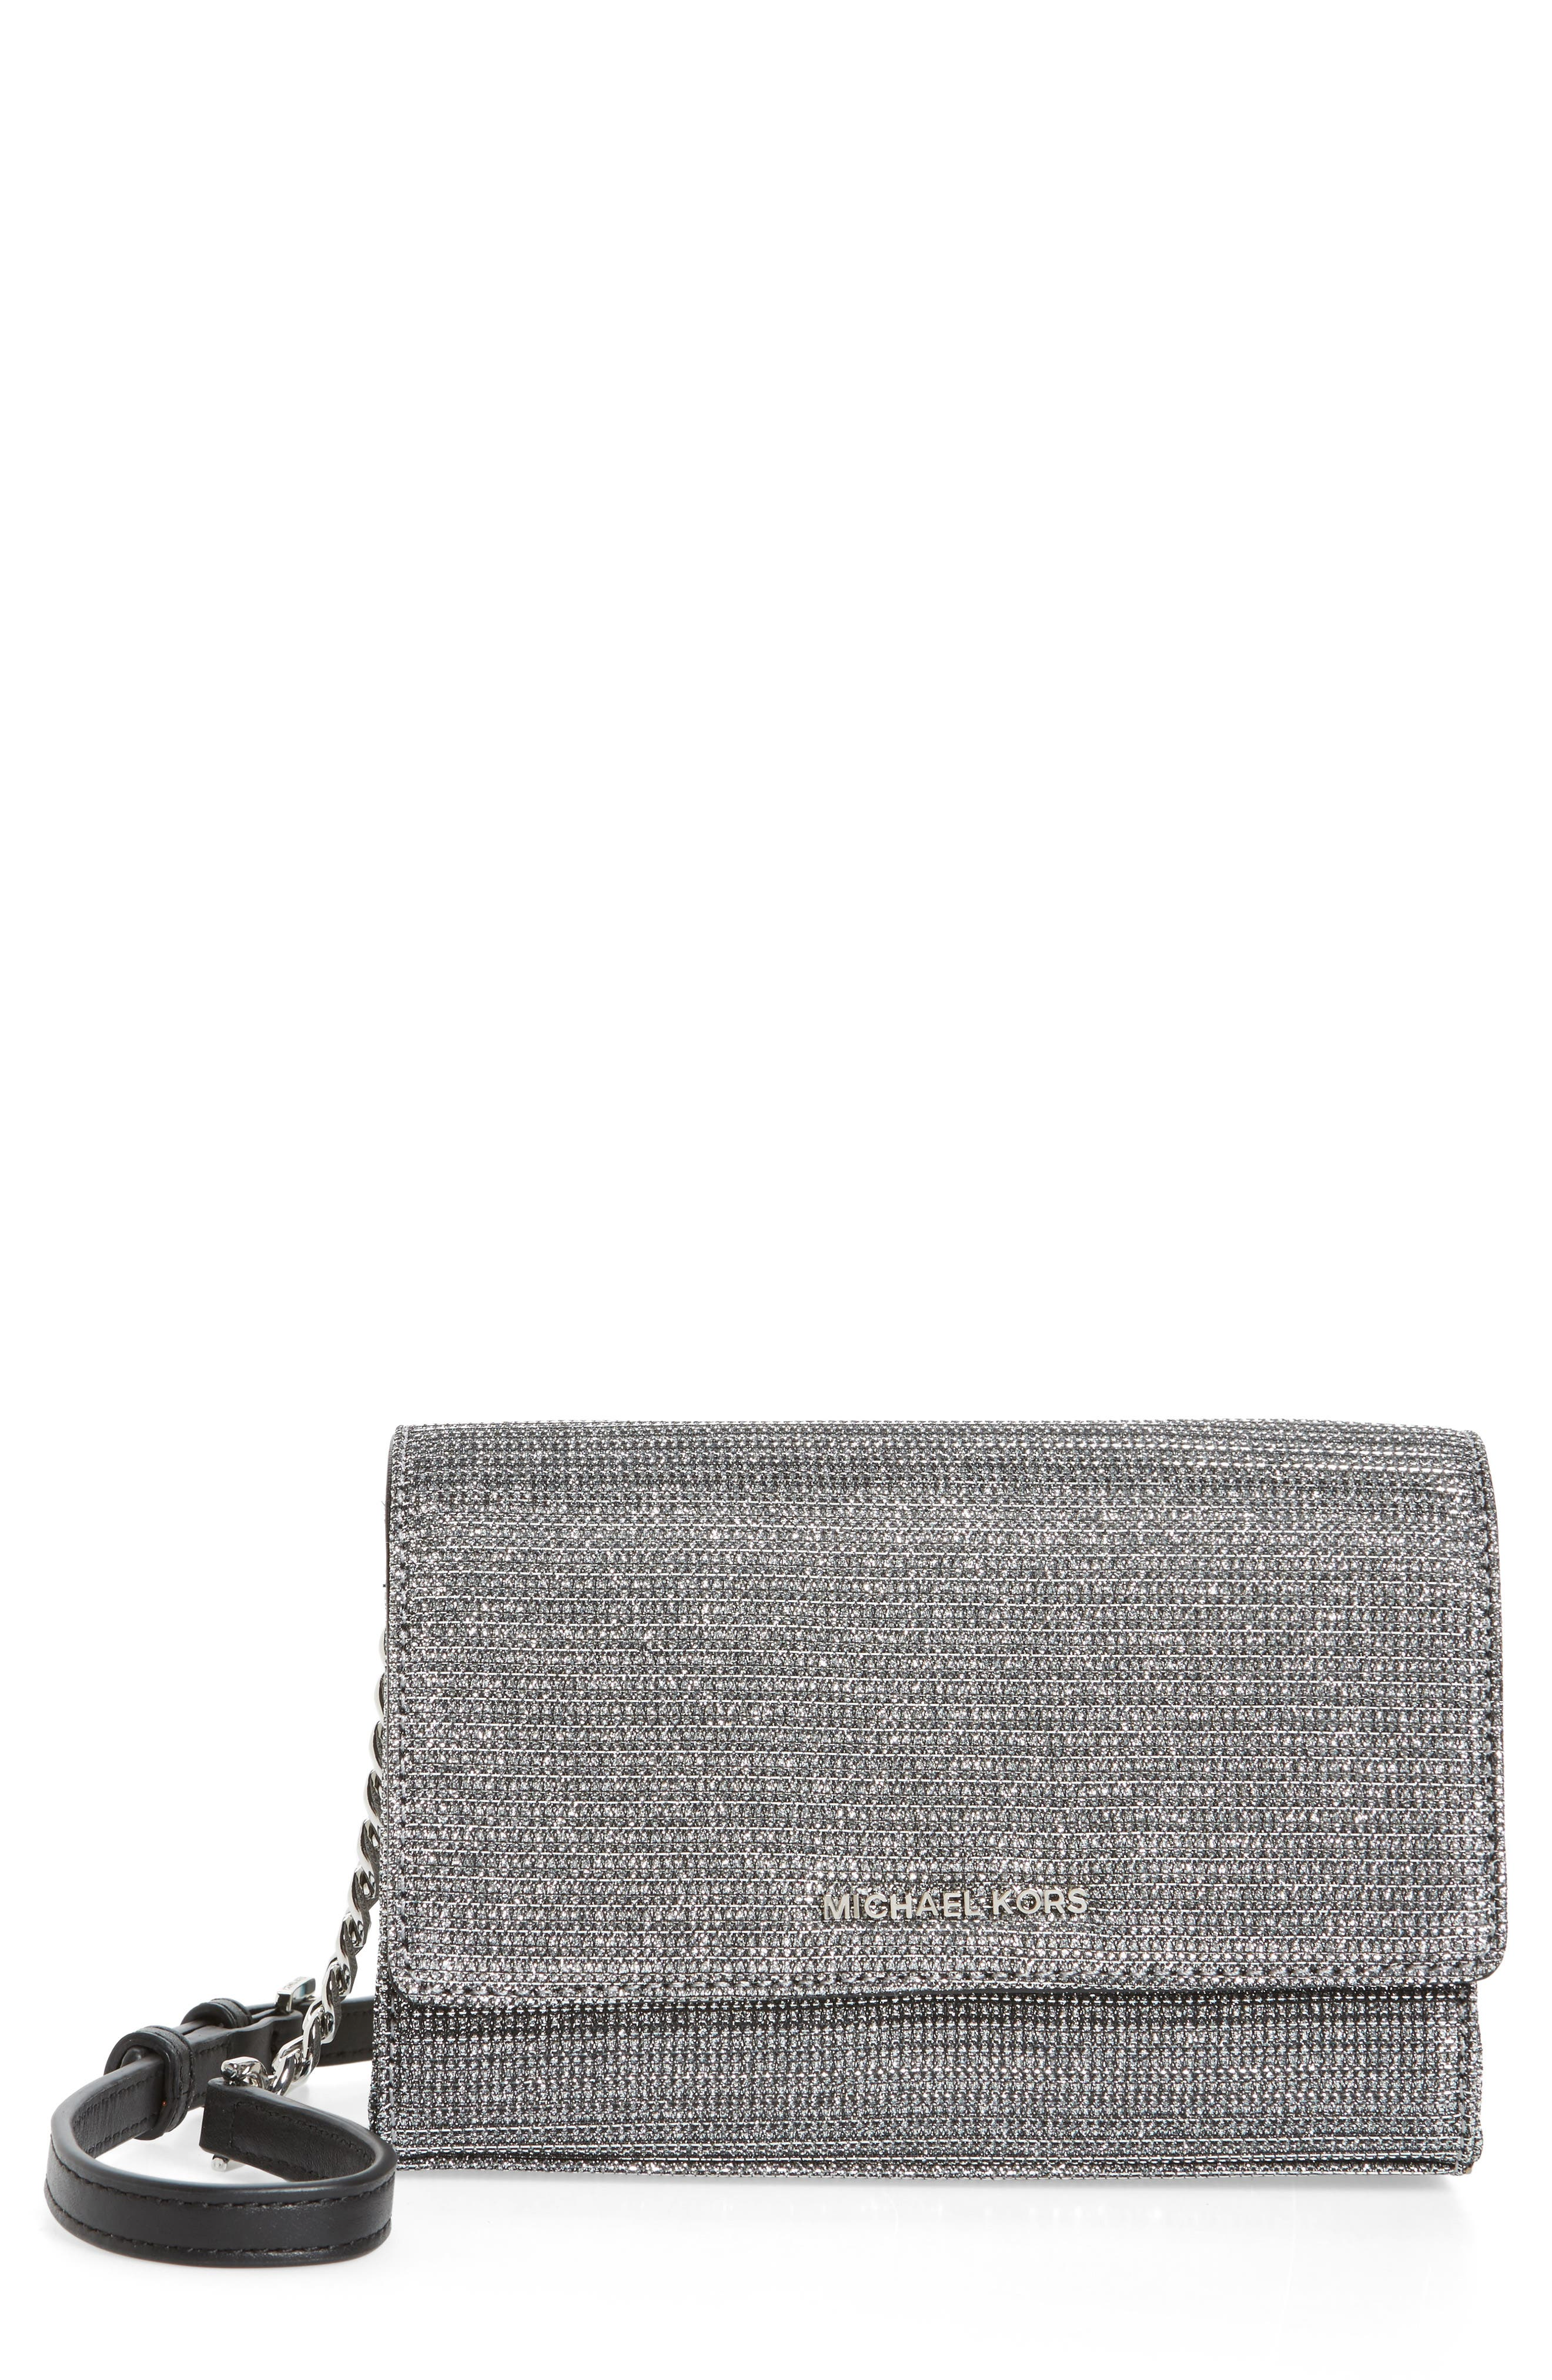 Medium Ruby Convertible Leather Clutch,                             Main thumbnail 1, color,                             Black/ Silver